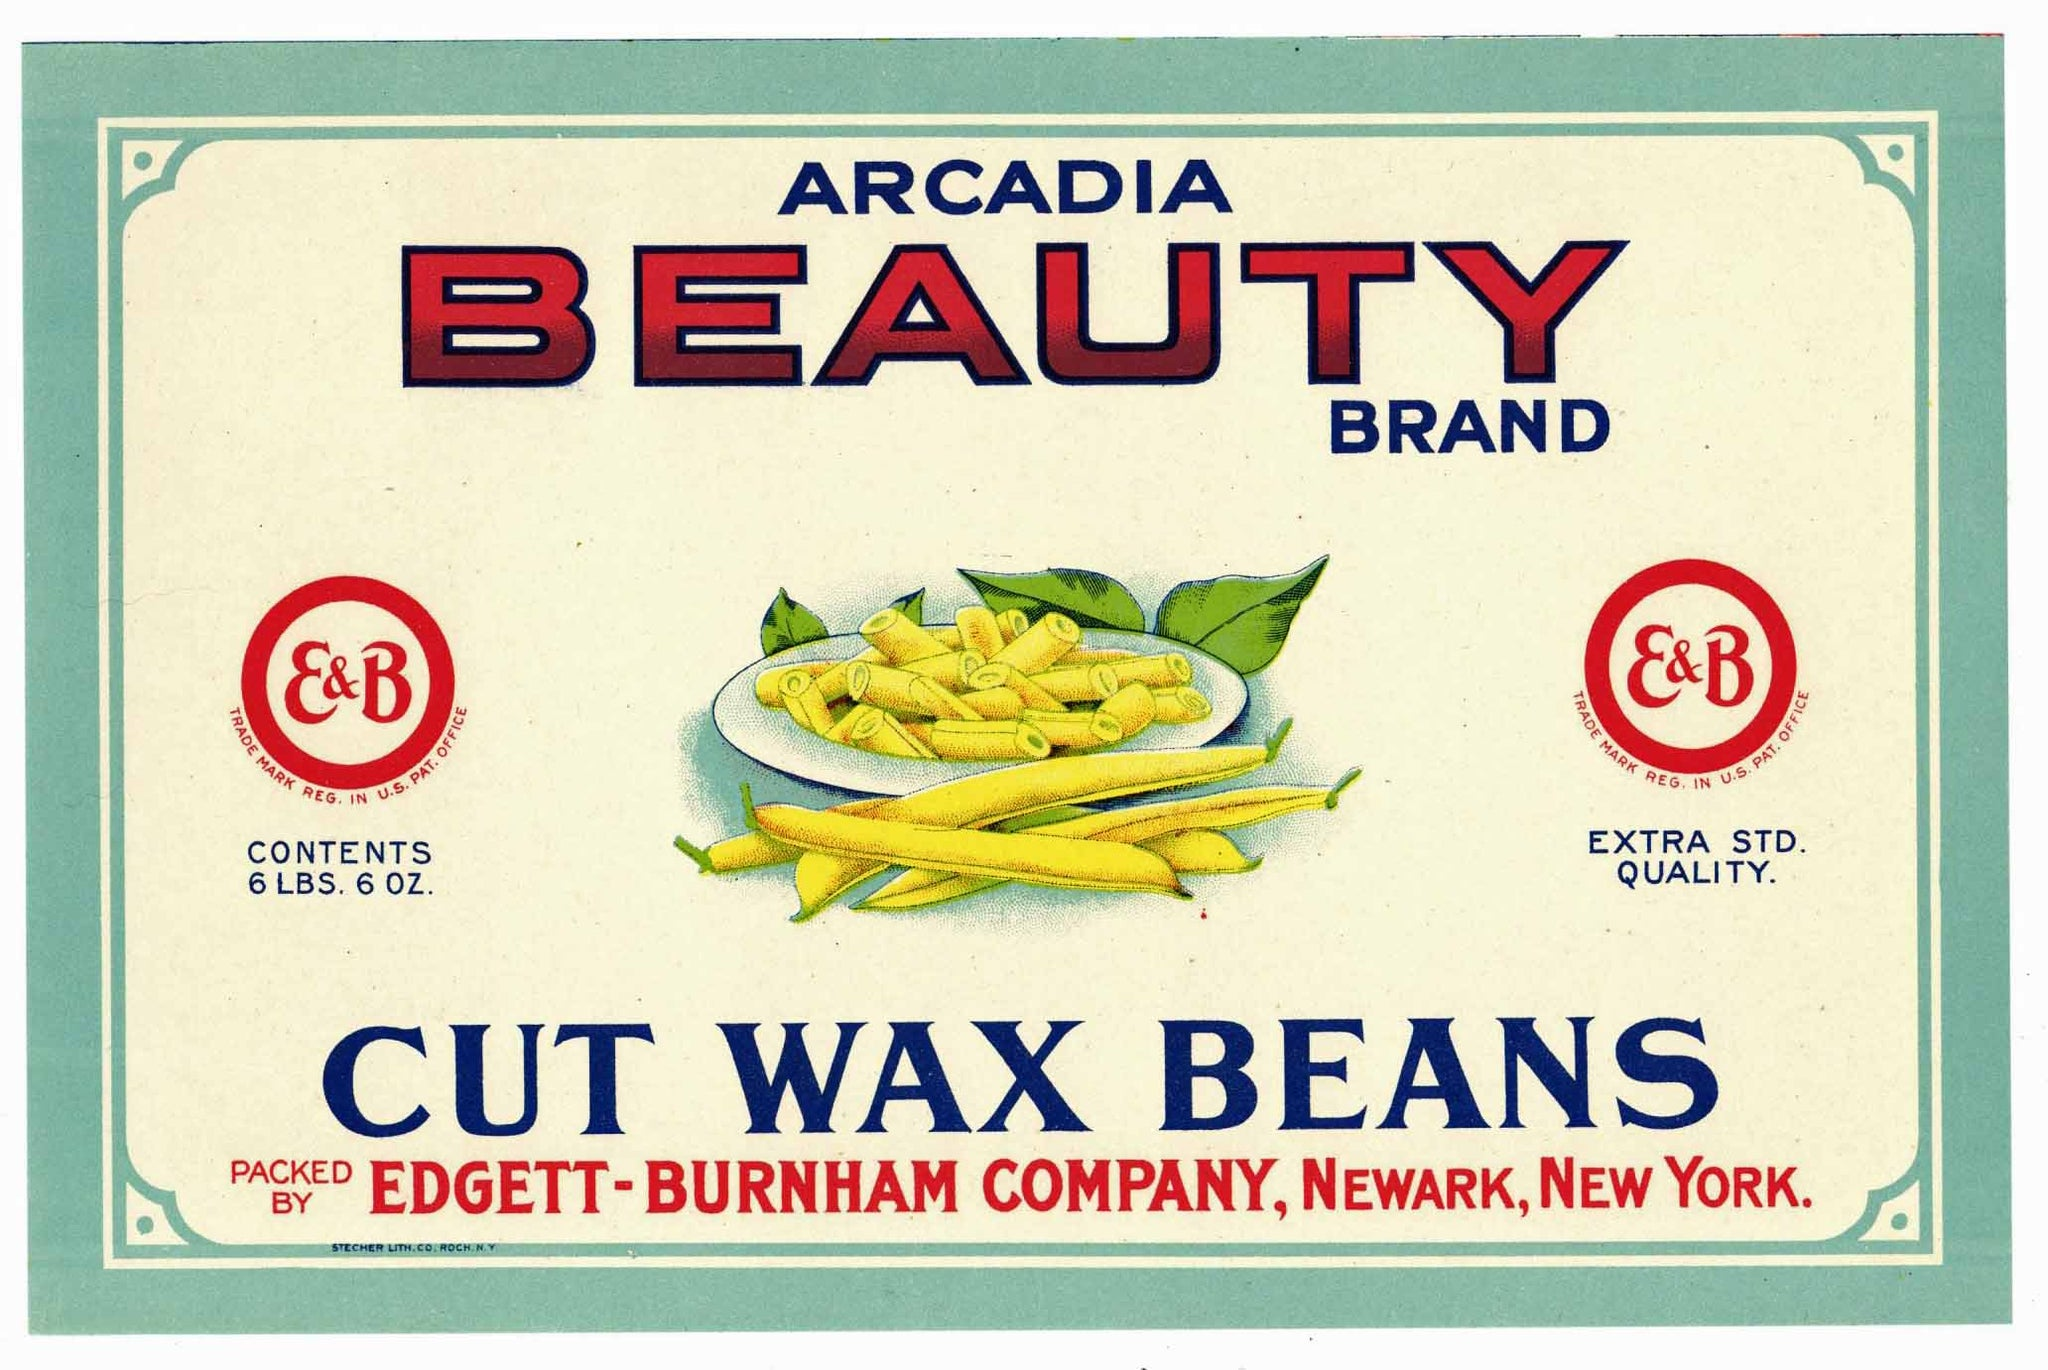 Arcadia Beauty Brand Vintage Cut Wax Beans Can Label, sq